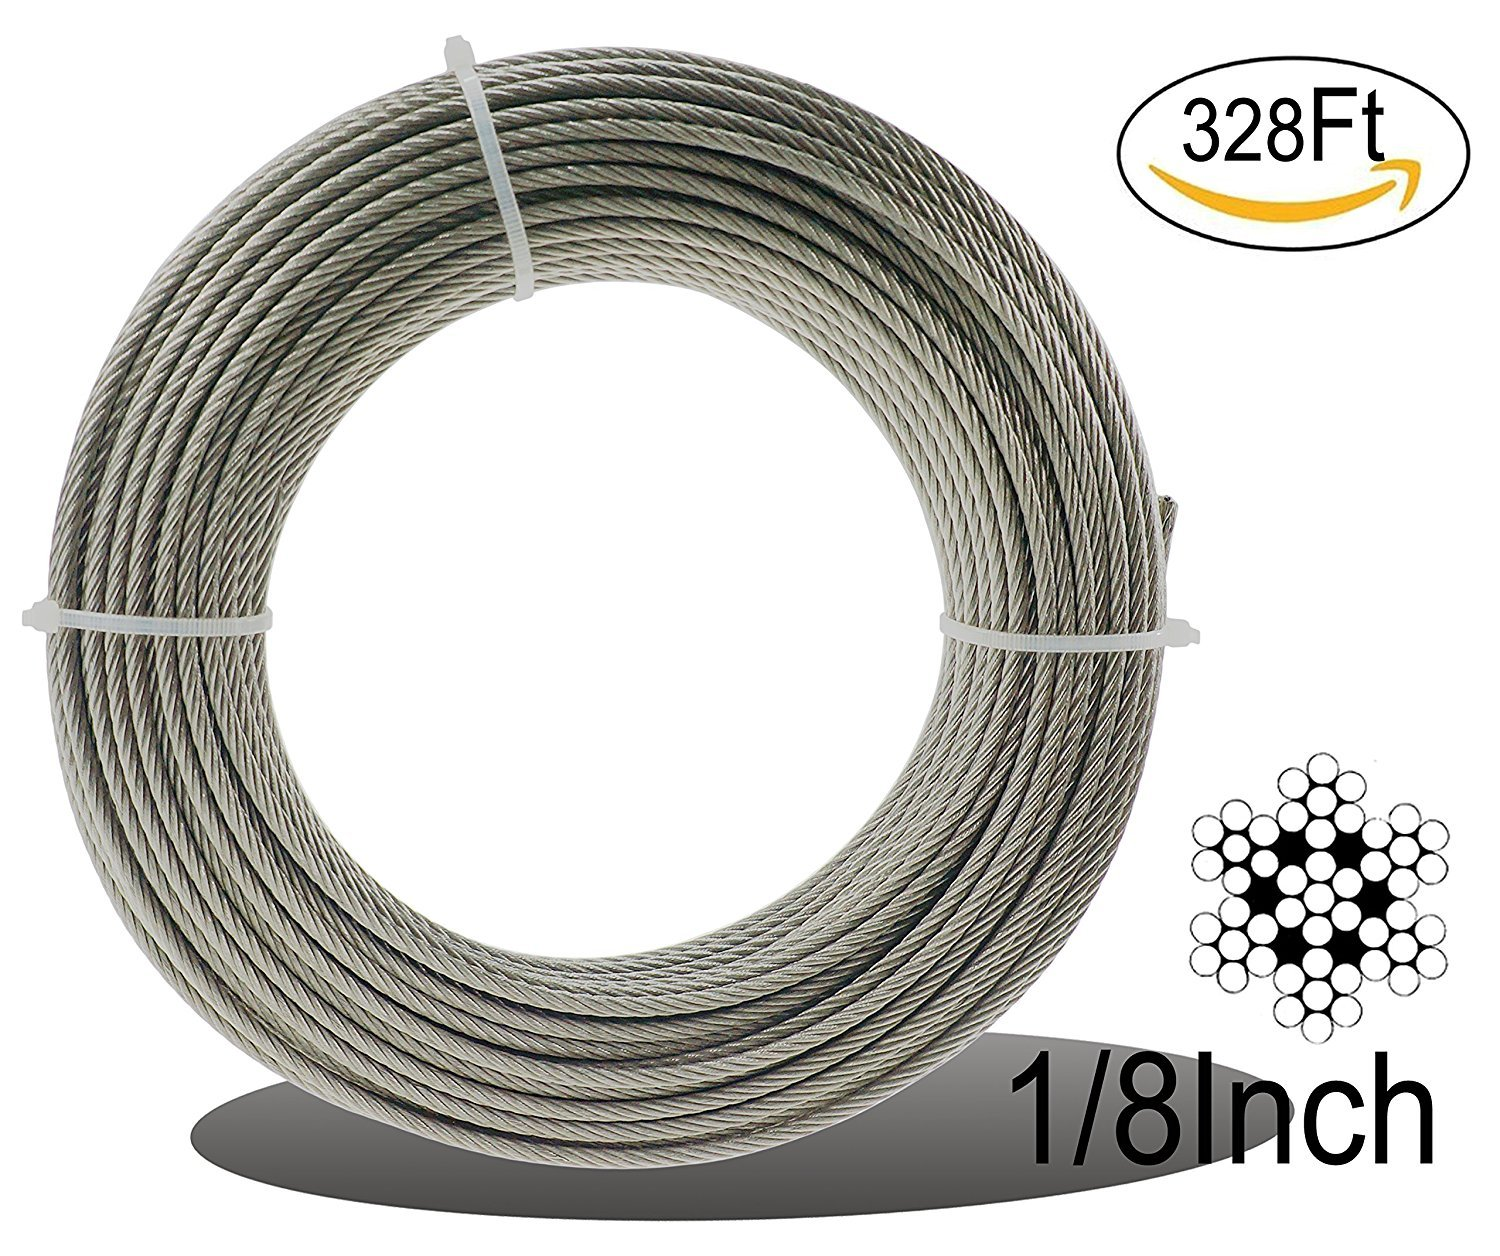 """Cable Railing Kit Set, with 328Feet 1/8"""" Stainless Steel Wire Rope Cable, Cable Cutter, Eye-Eye Turnbuckles, Thimbles, Eye Straps, Swages (Ferrules) and Screws, Heavy Duty, Muzata by Muzata (Image #3)"""